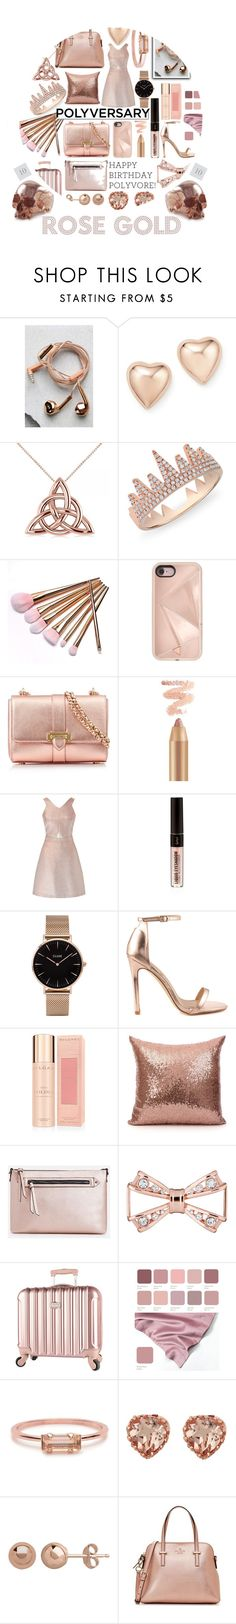 """""""Celebrate Our 10th Polyversary!"""" by numbsunday ❤ liked on Polyvore featuring Happy Plugs, Bloomingdale's, Allurez, Anne Sisteron, White Label, Rebecca Minkoff, Aspinal of London, Miss Selfridge, CLUSE and Liliana"""